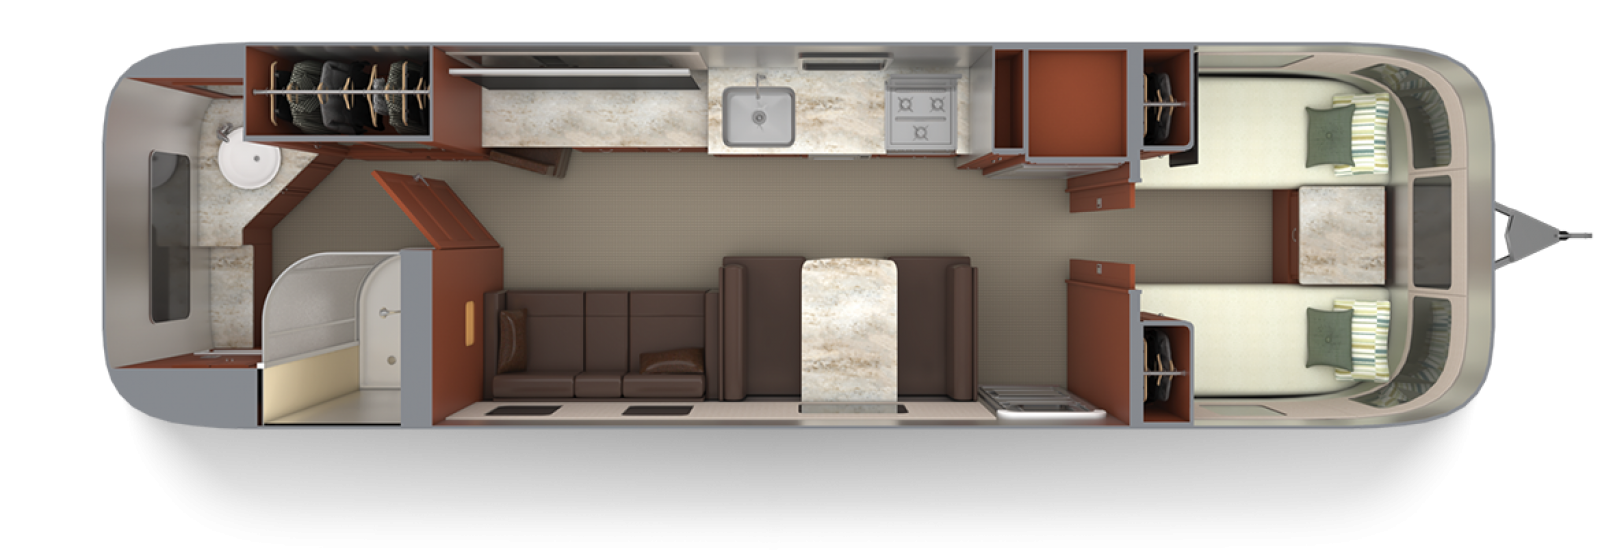 Airstream-Classic-33FB-Twin-Mocha-Cherry-with-Chestnut-Floor-Plan